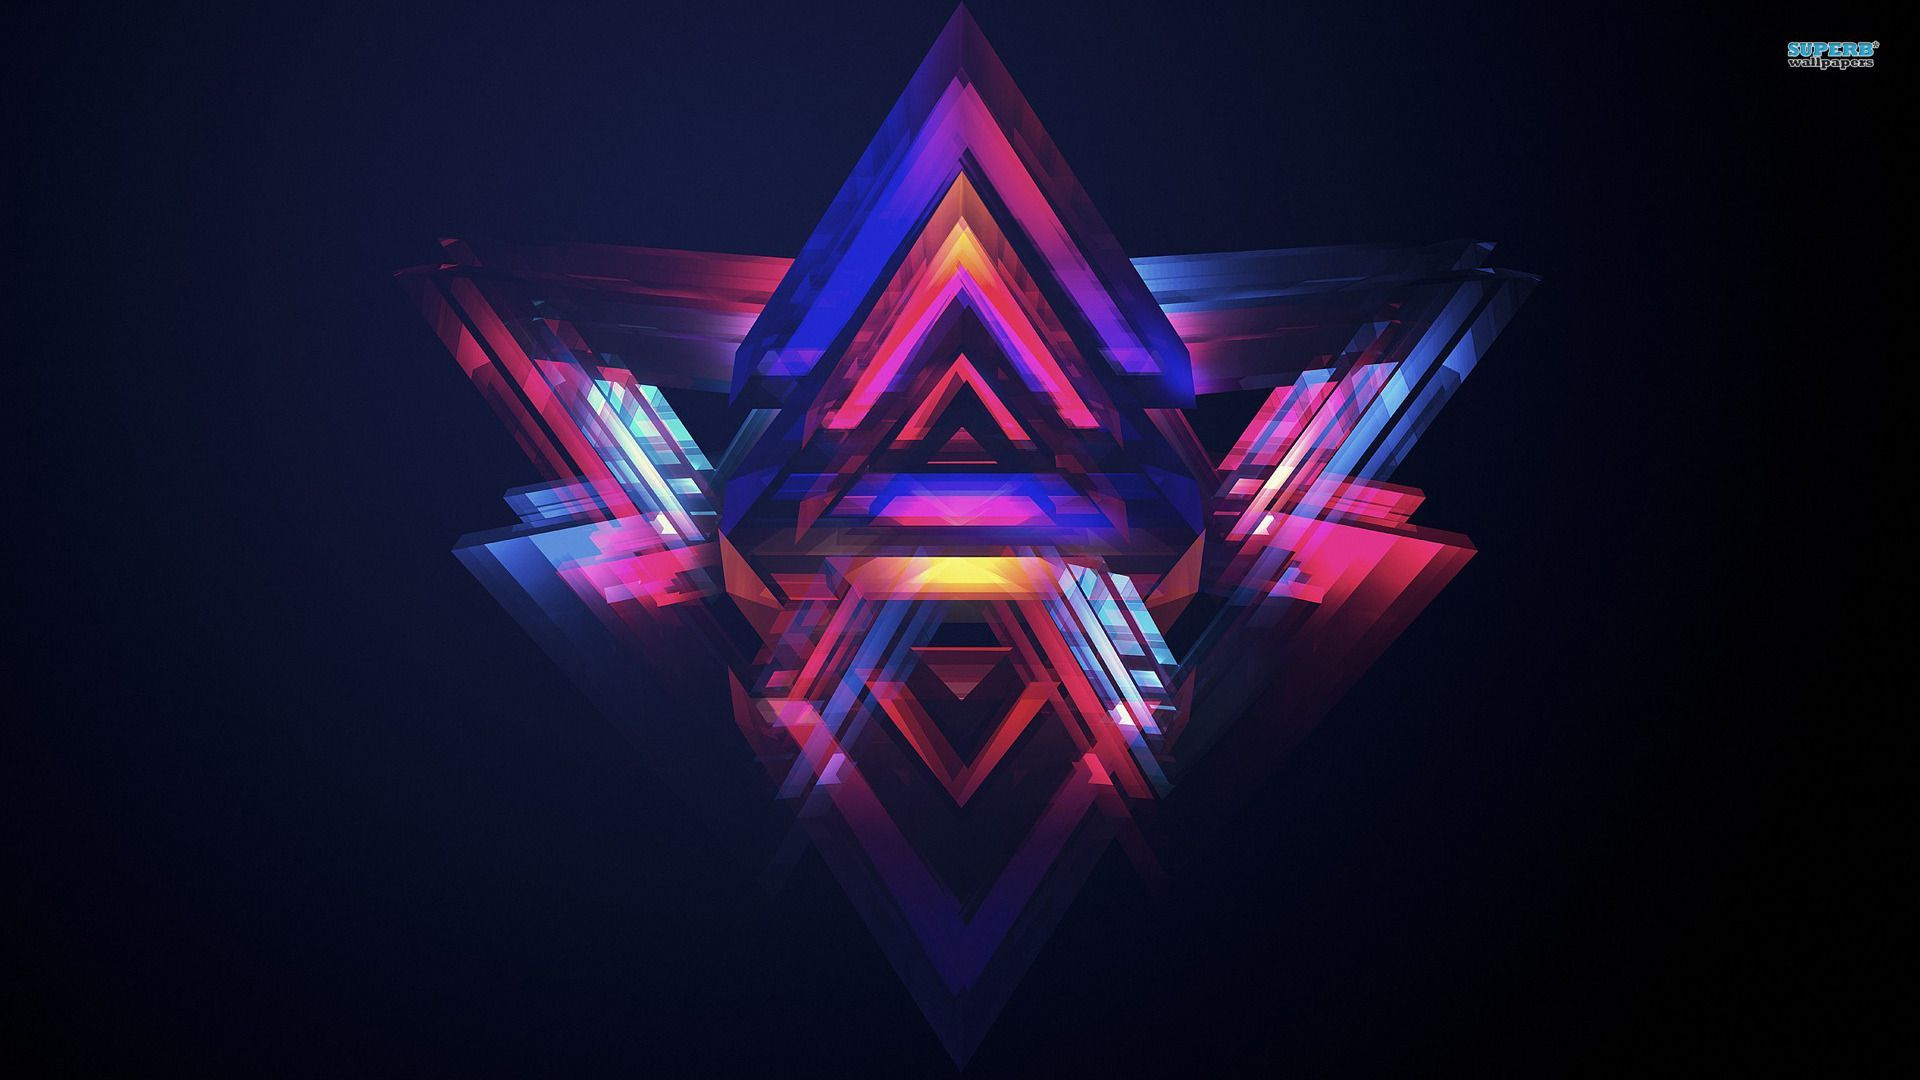 Neon iphone wallpaper tumblr - Cool Iphone Wallpaper Swag Tumblr 483 Check More At Https All